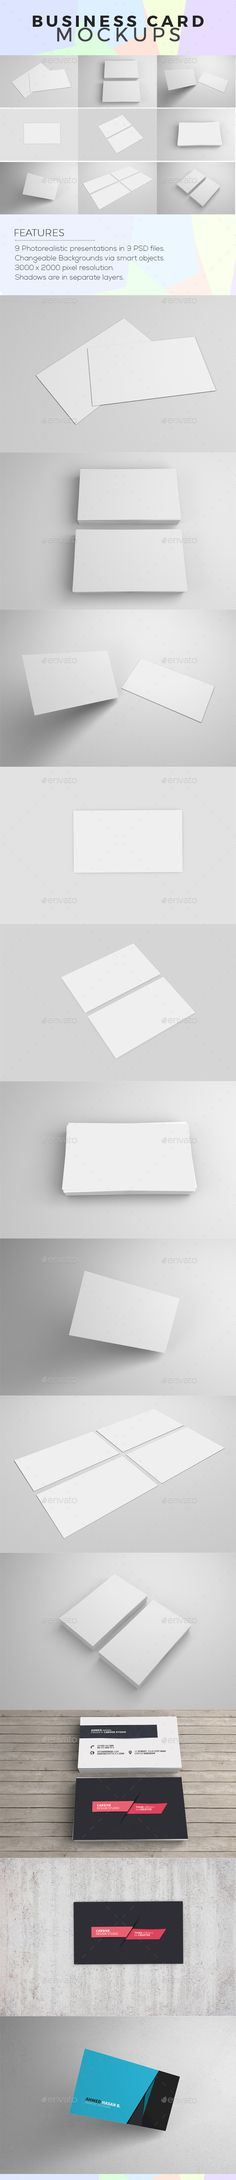 Realistic Business Card Mock-up | Business cards, Mock up and Business